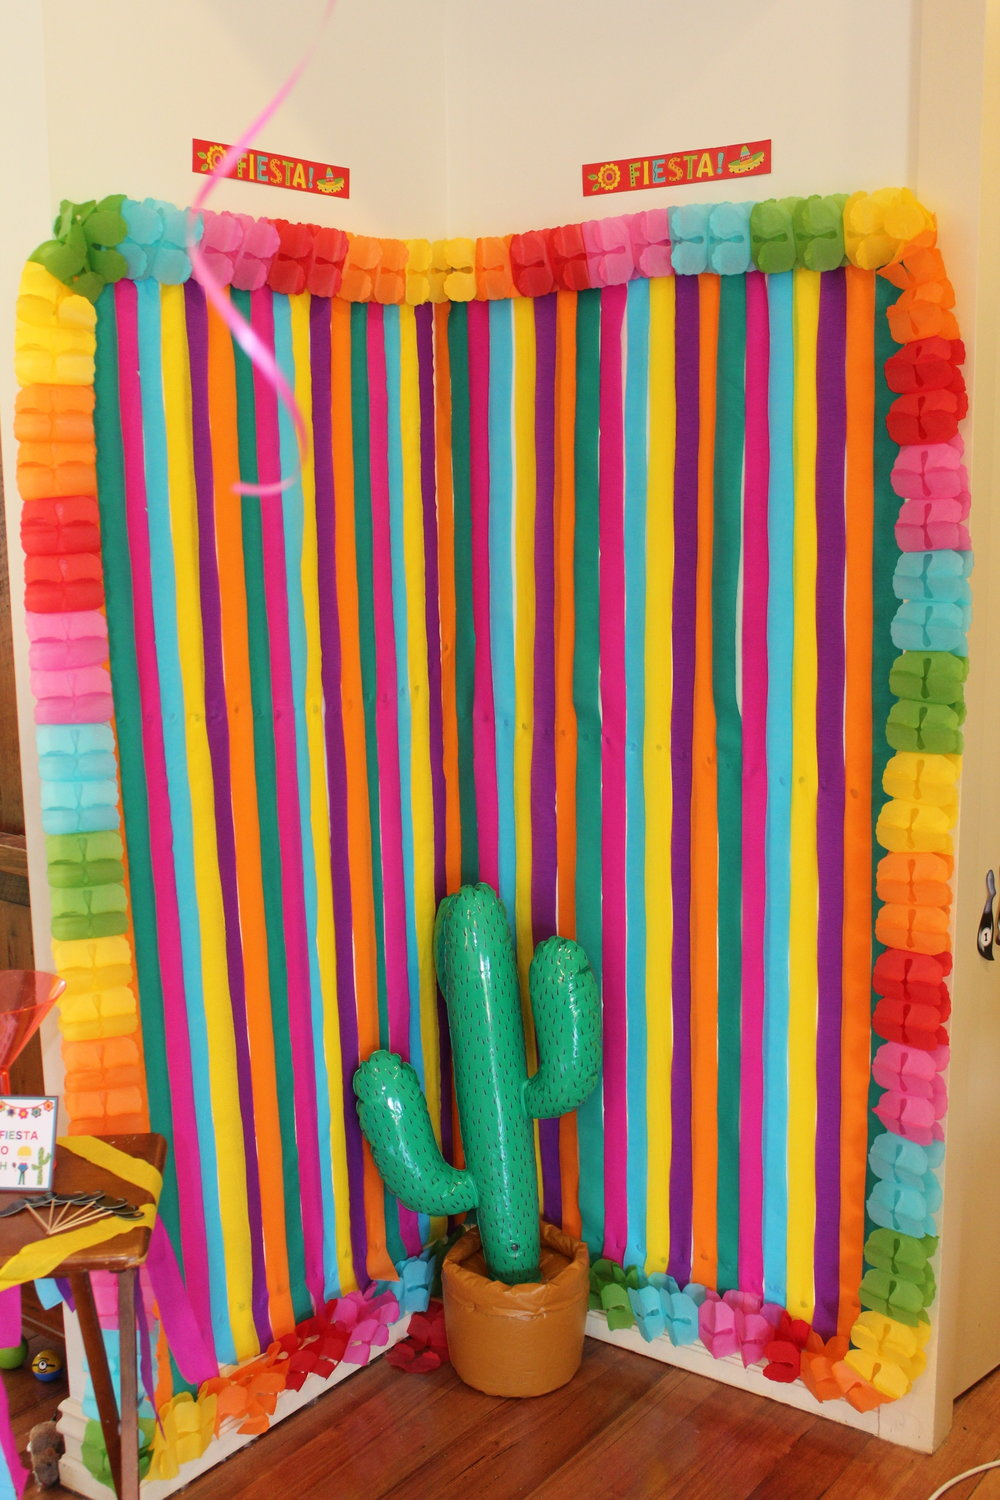 Mexican Party Photo Booth